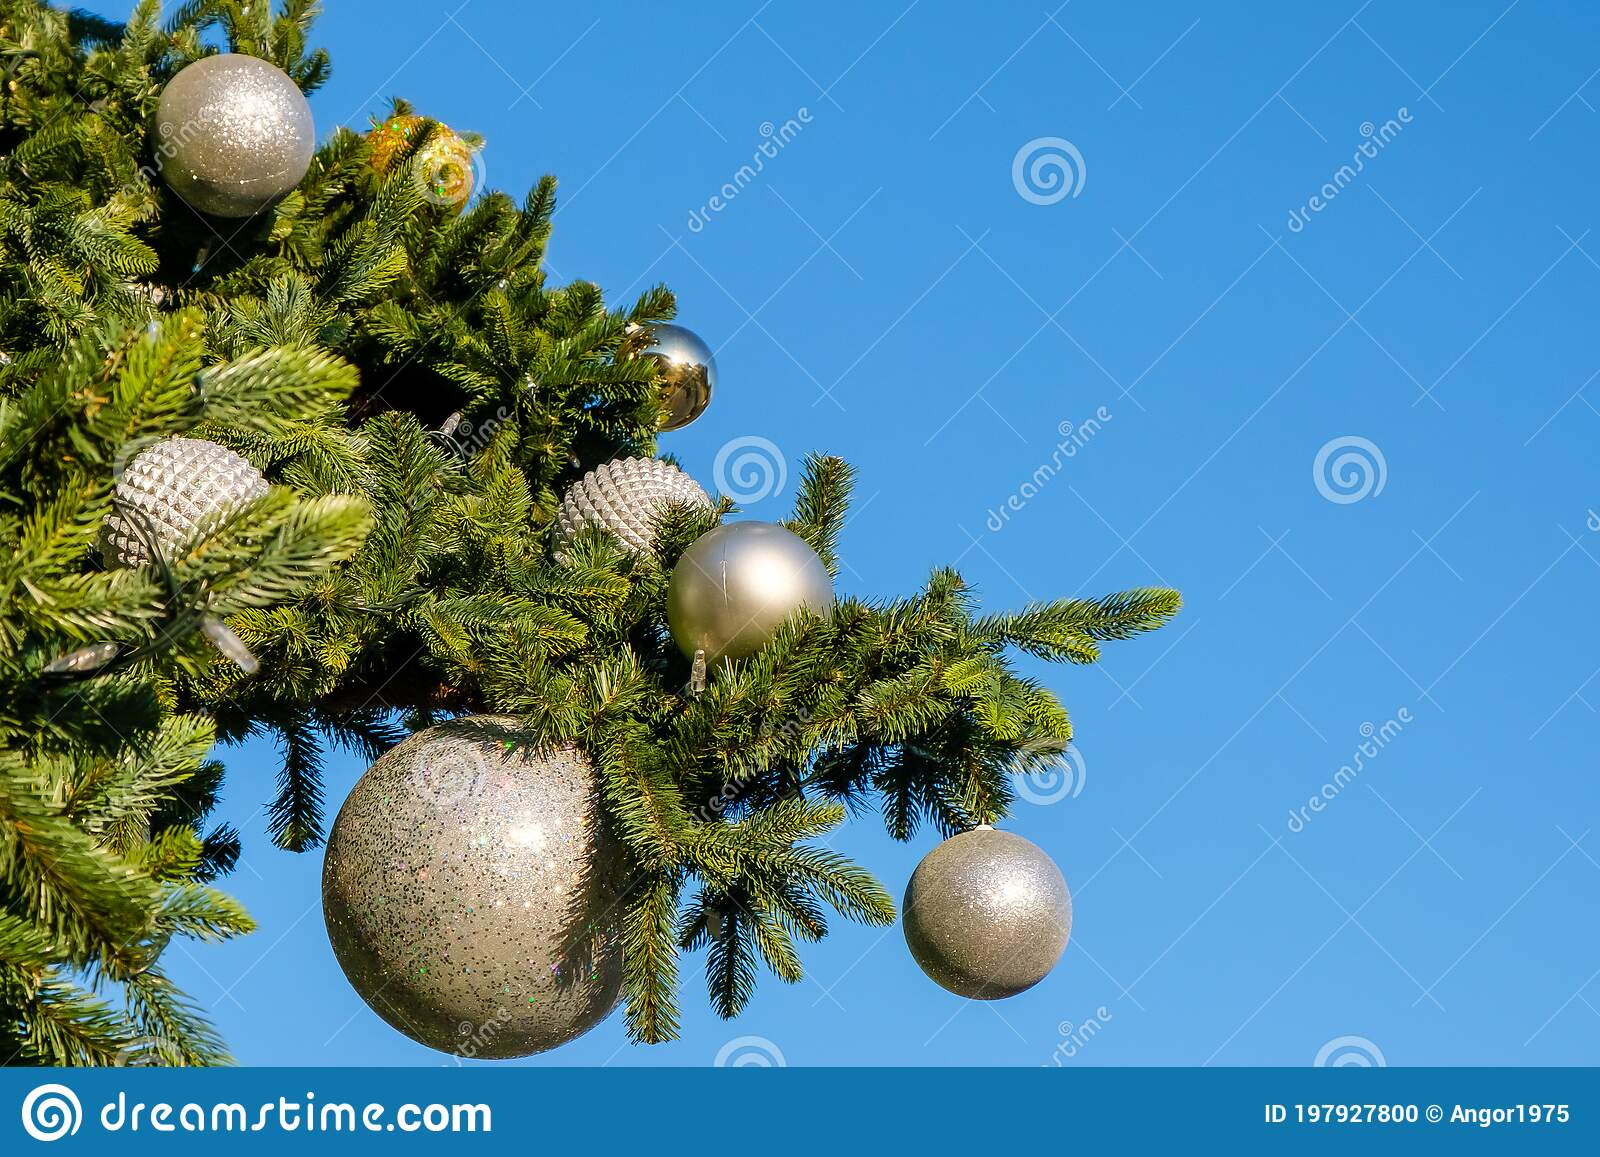 11 426 Christmas Outdoors Summer Photos Free Royalty Free Stock Photos From Dreamstime